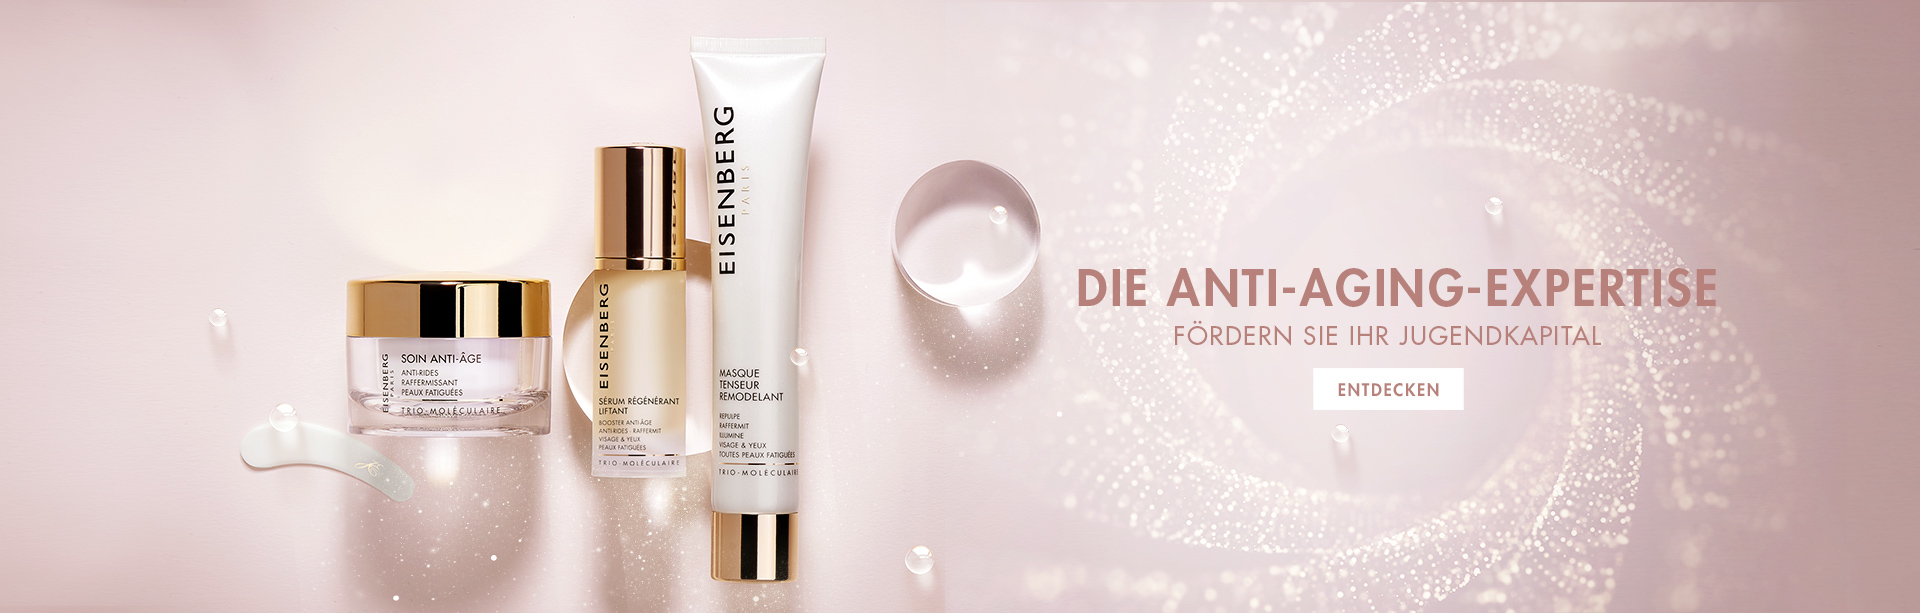 Die anti-ageing expertise